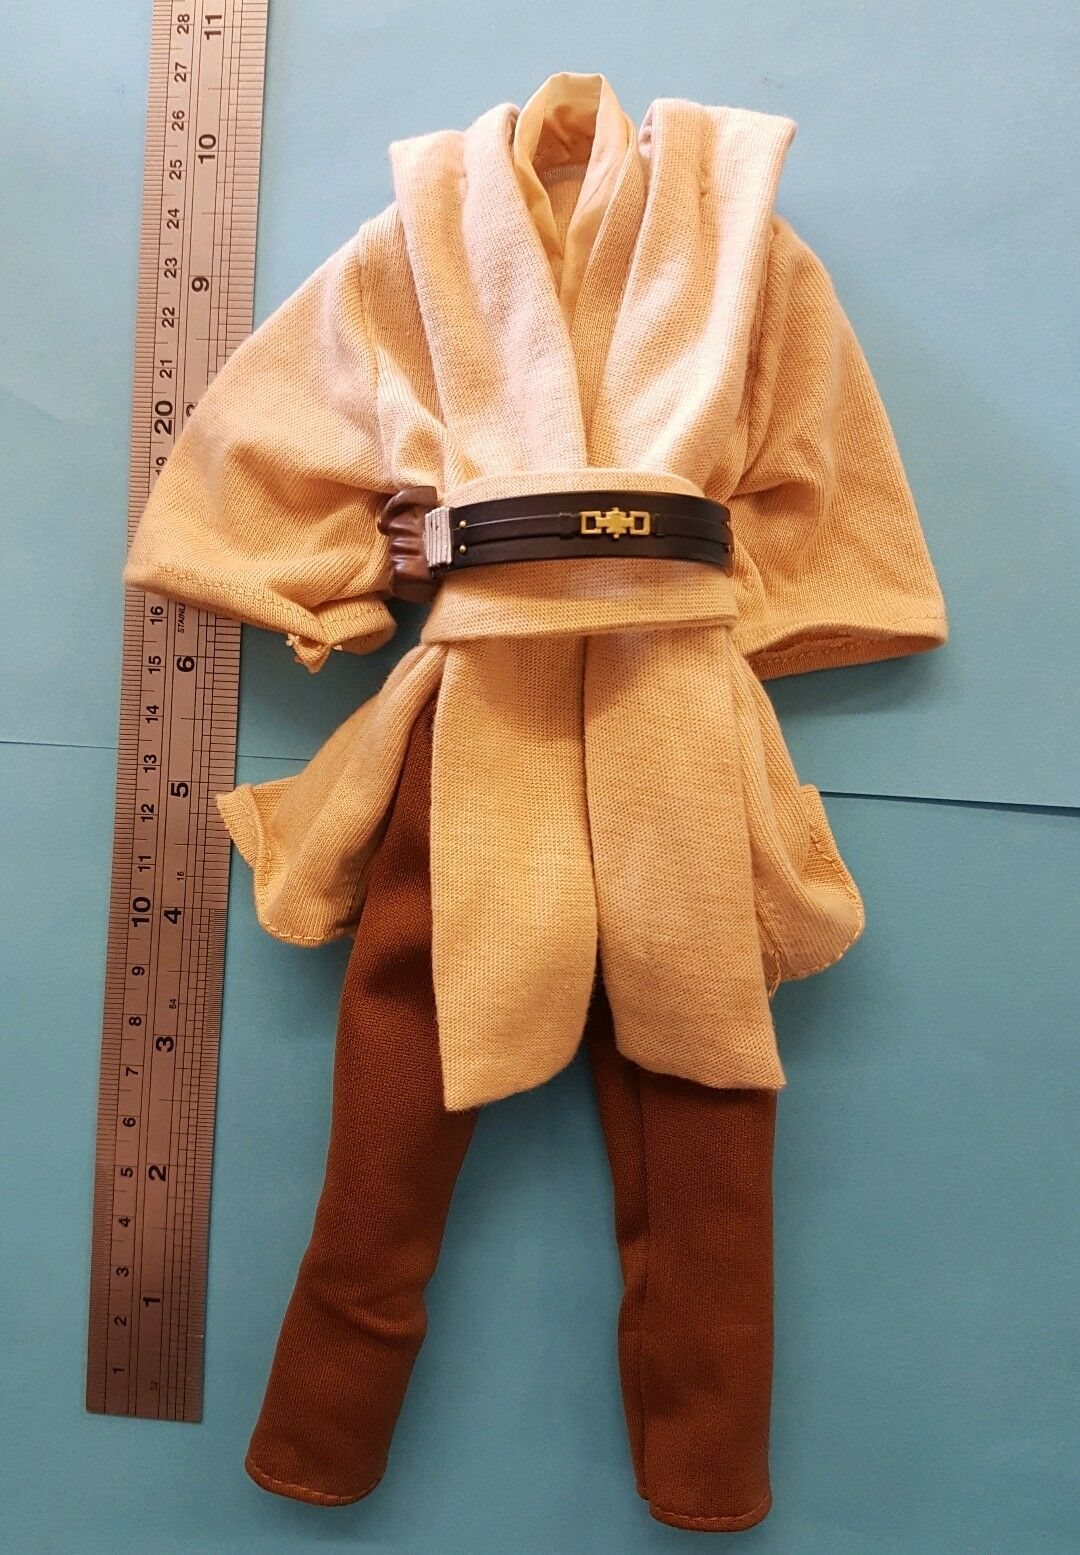 1 6 scale Epi I Star Wars Qui-Gon Jinn 's outfit for custom 12   figure 12 inch